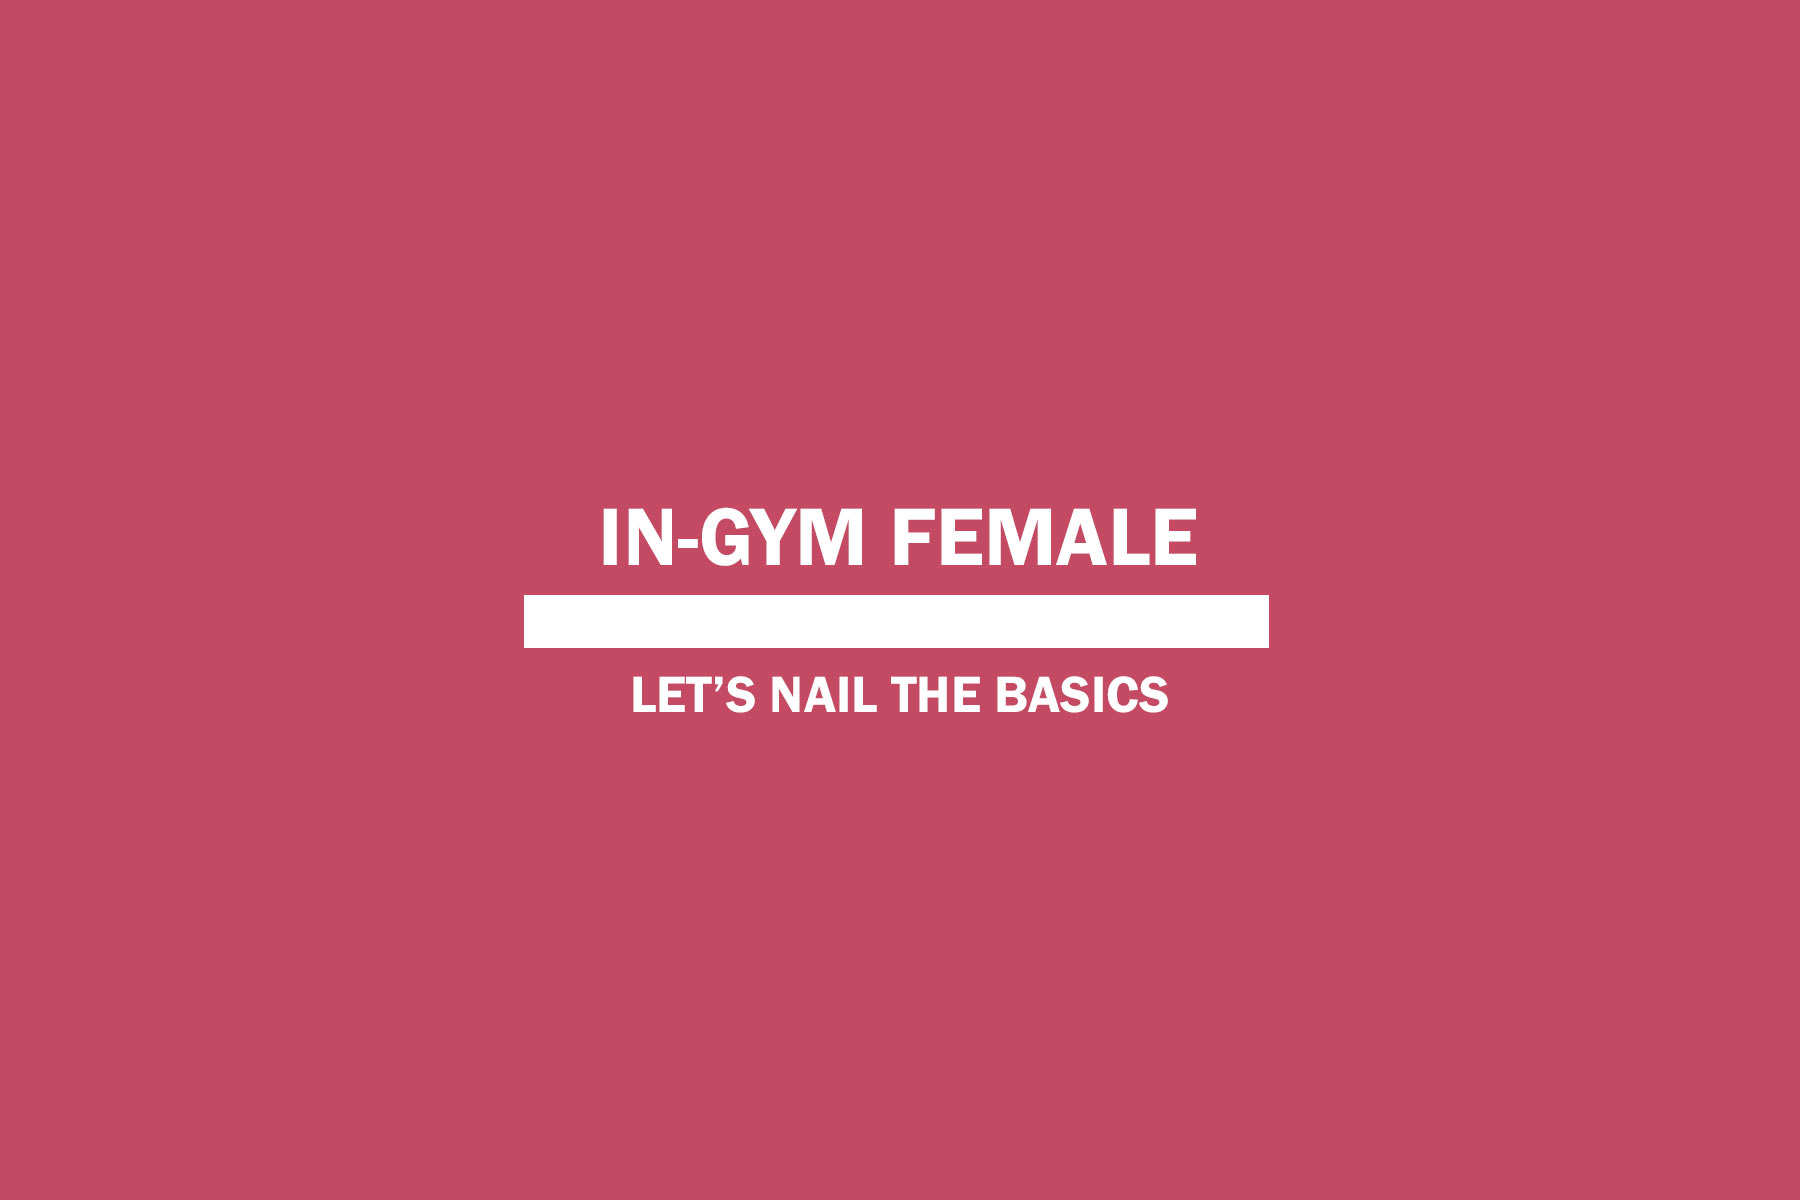 In-gym Female 24th of June to 15th of July